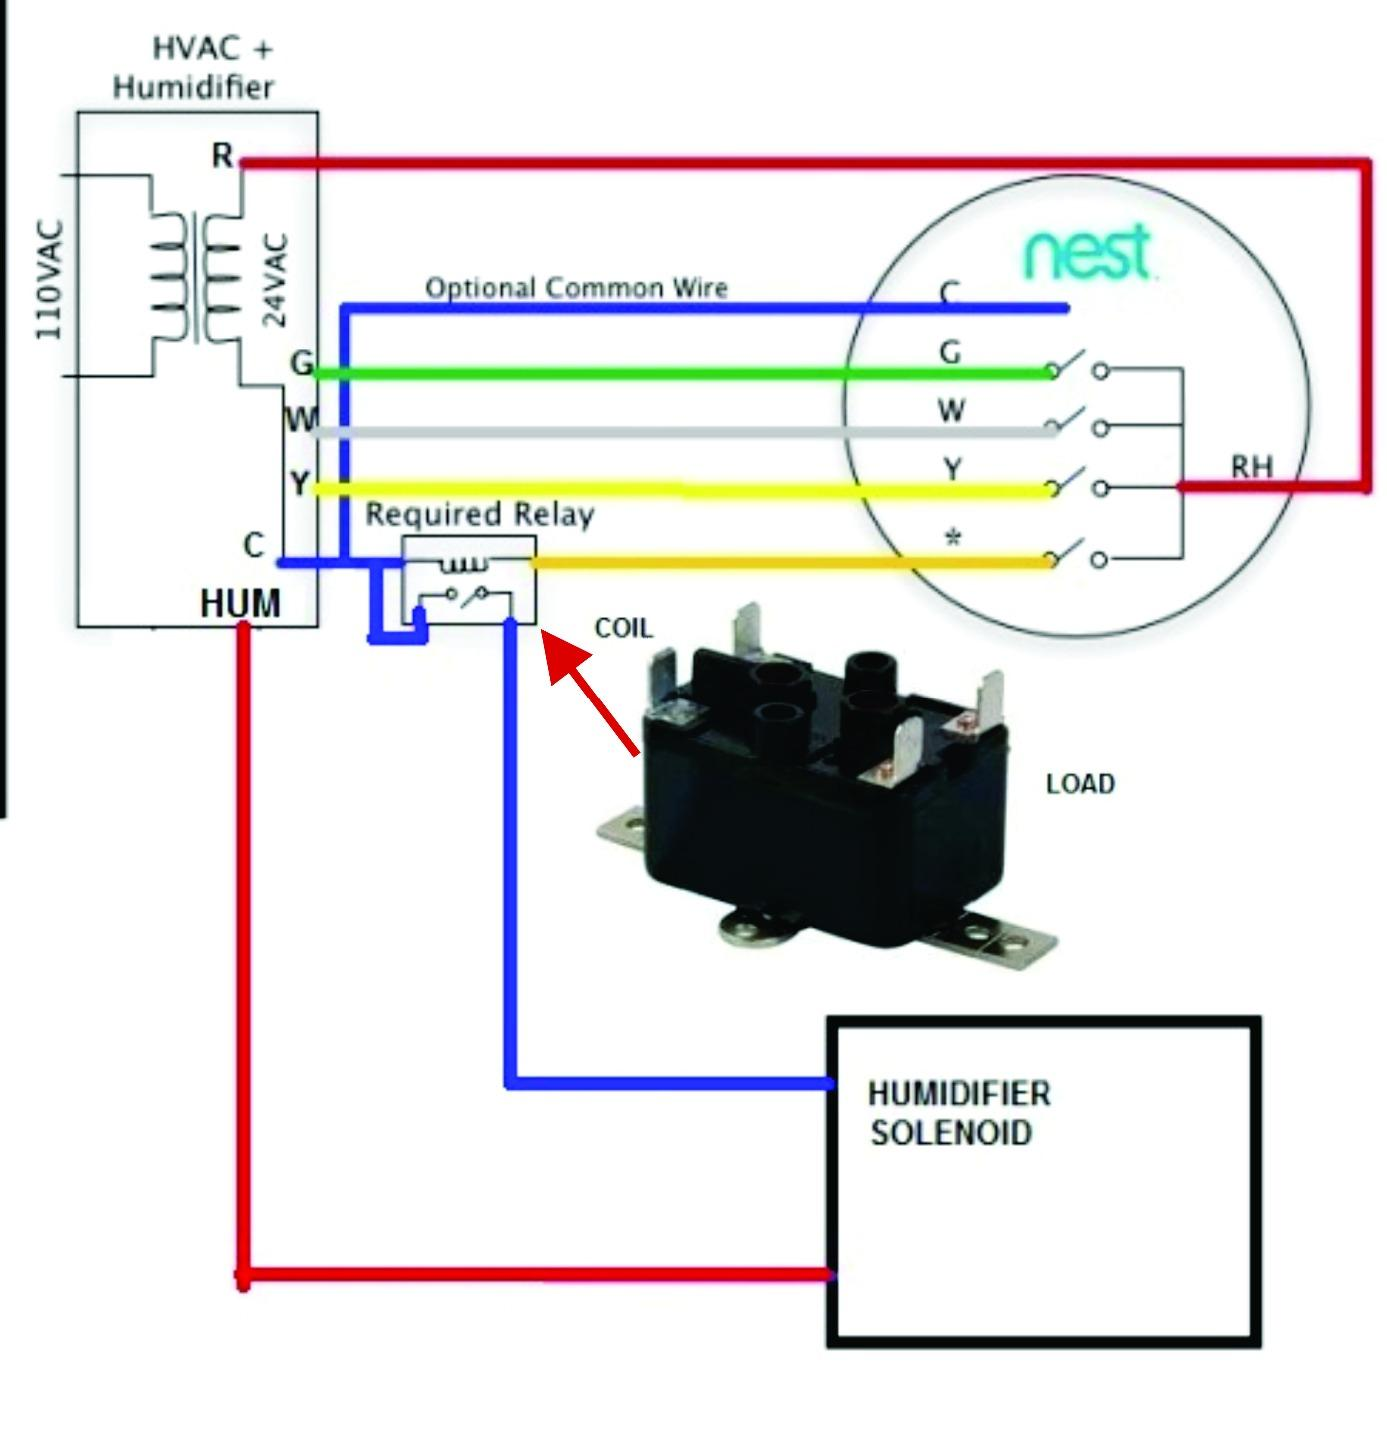 Wiring Diagram Nest Thermostat Aprilaire 760 Thermostat Wiring - Fav on